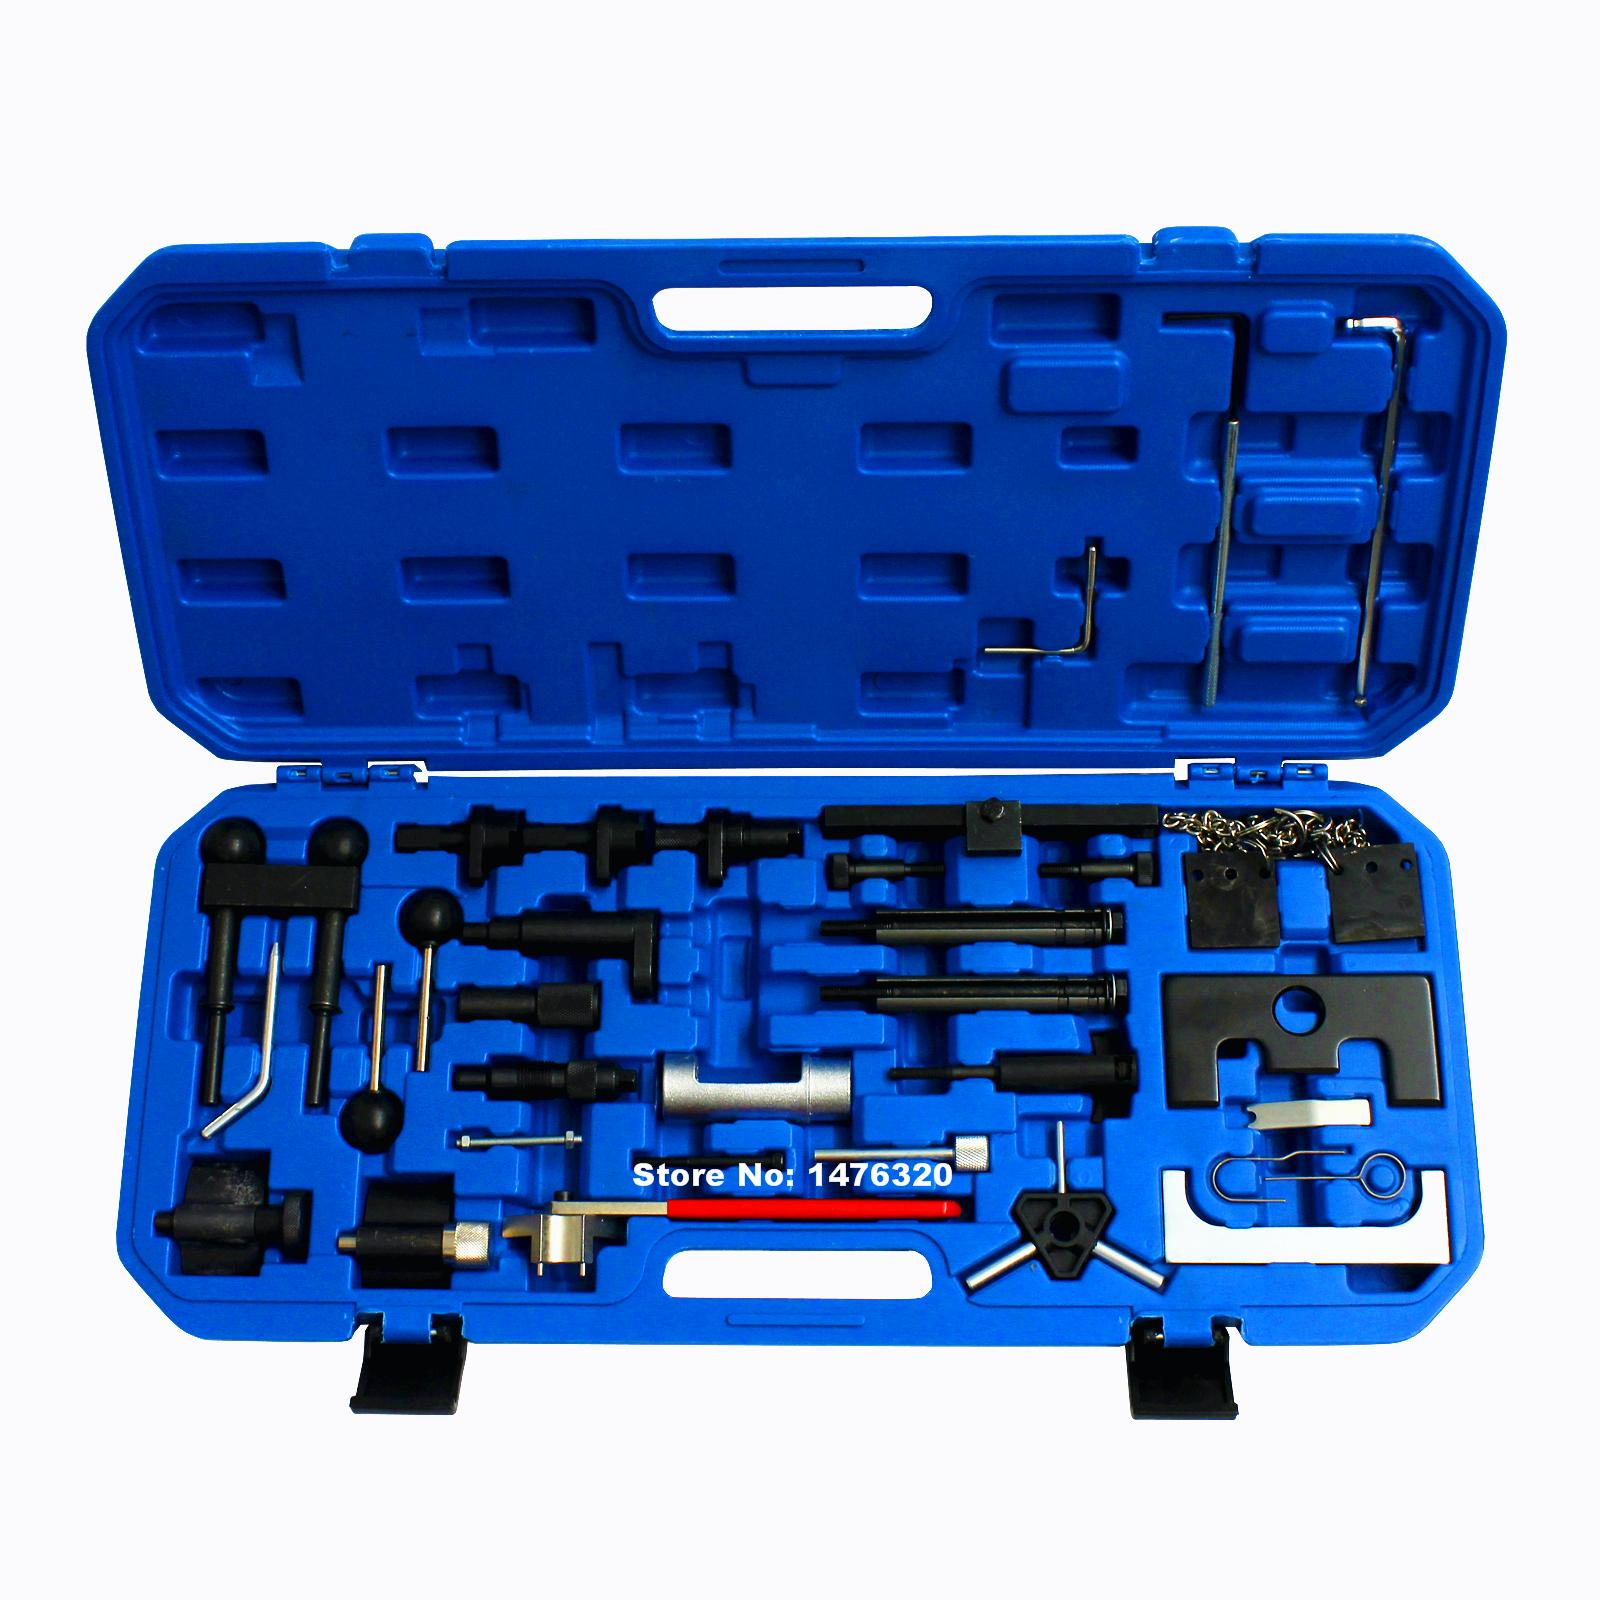 Automotive Diesel Petrol Engine Timing Tool Kit For VW AUDI A2/A3/S3/A4/A6/TT & 1.2/1.4/1.6/1.8/1.8T/2.0 AT2055 wholesale 2 2 2 5 dci engine camshaft timing tool crankshaft alignment locking set for renault auto repair tools 2pcs lot